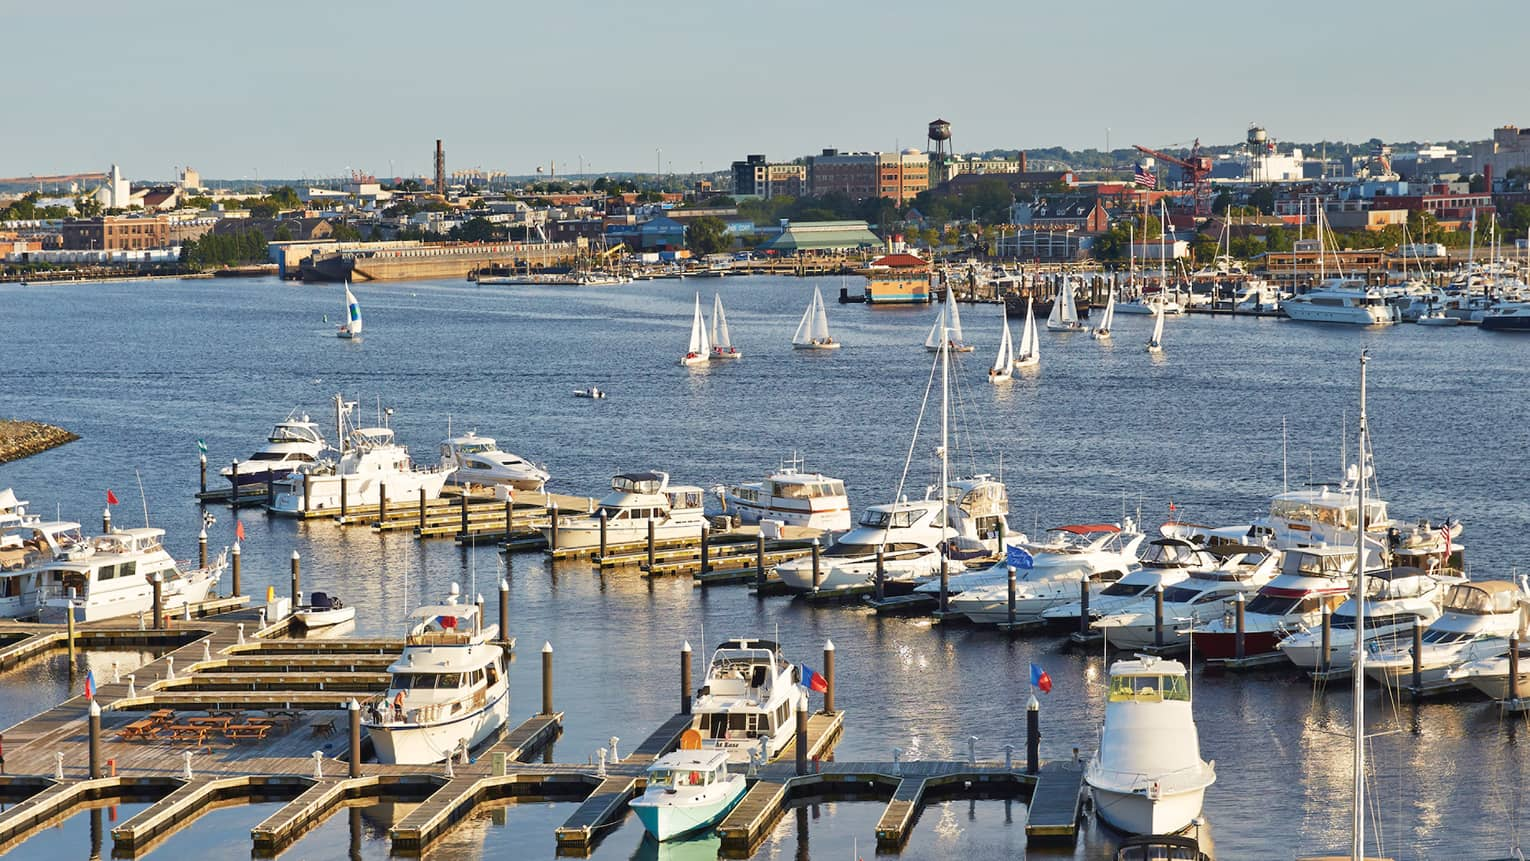 Looking down over boats, docks in Baltimore harbour on sunny day